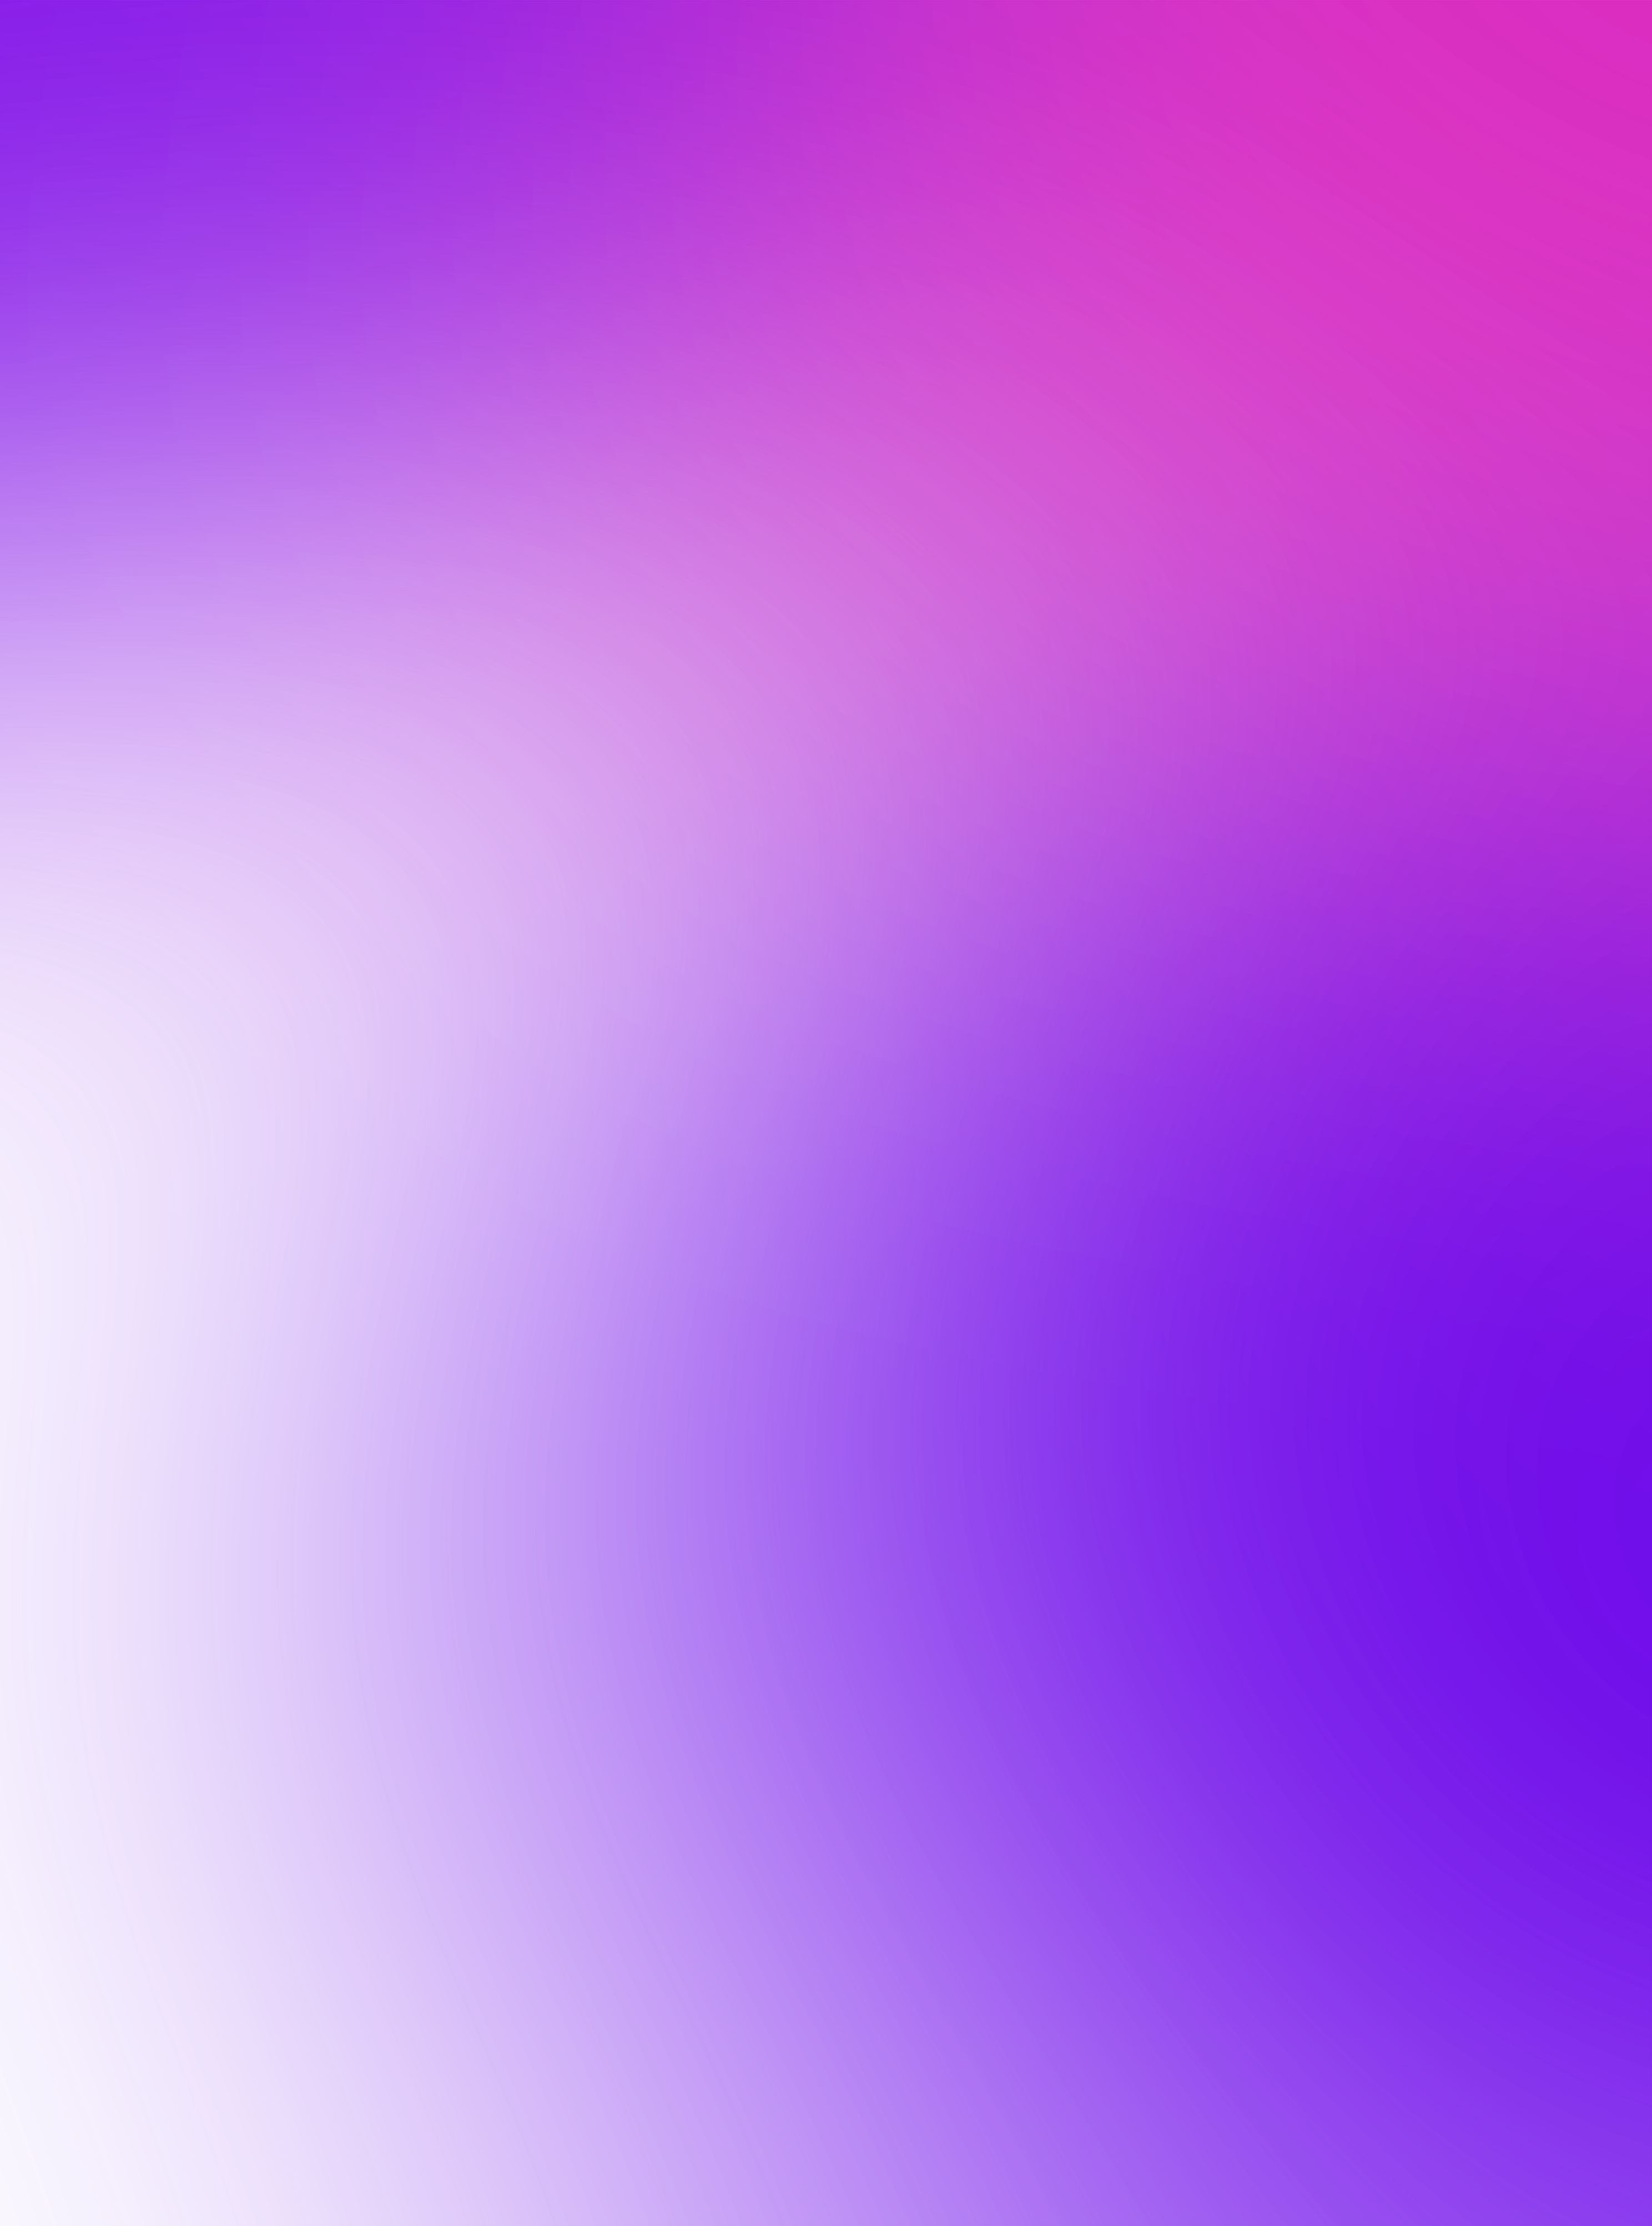 Gradient Light Purple Refraction Free HQ Image PNG Image